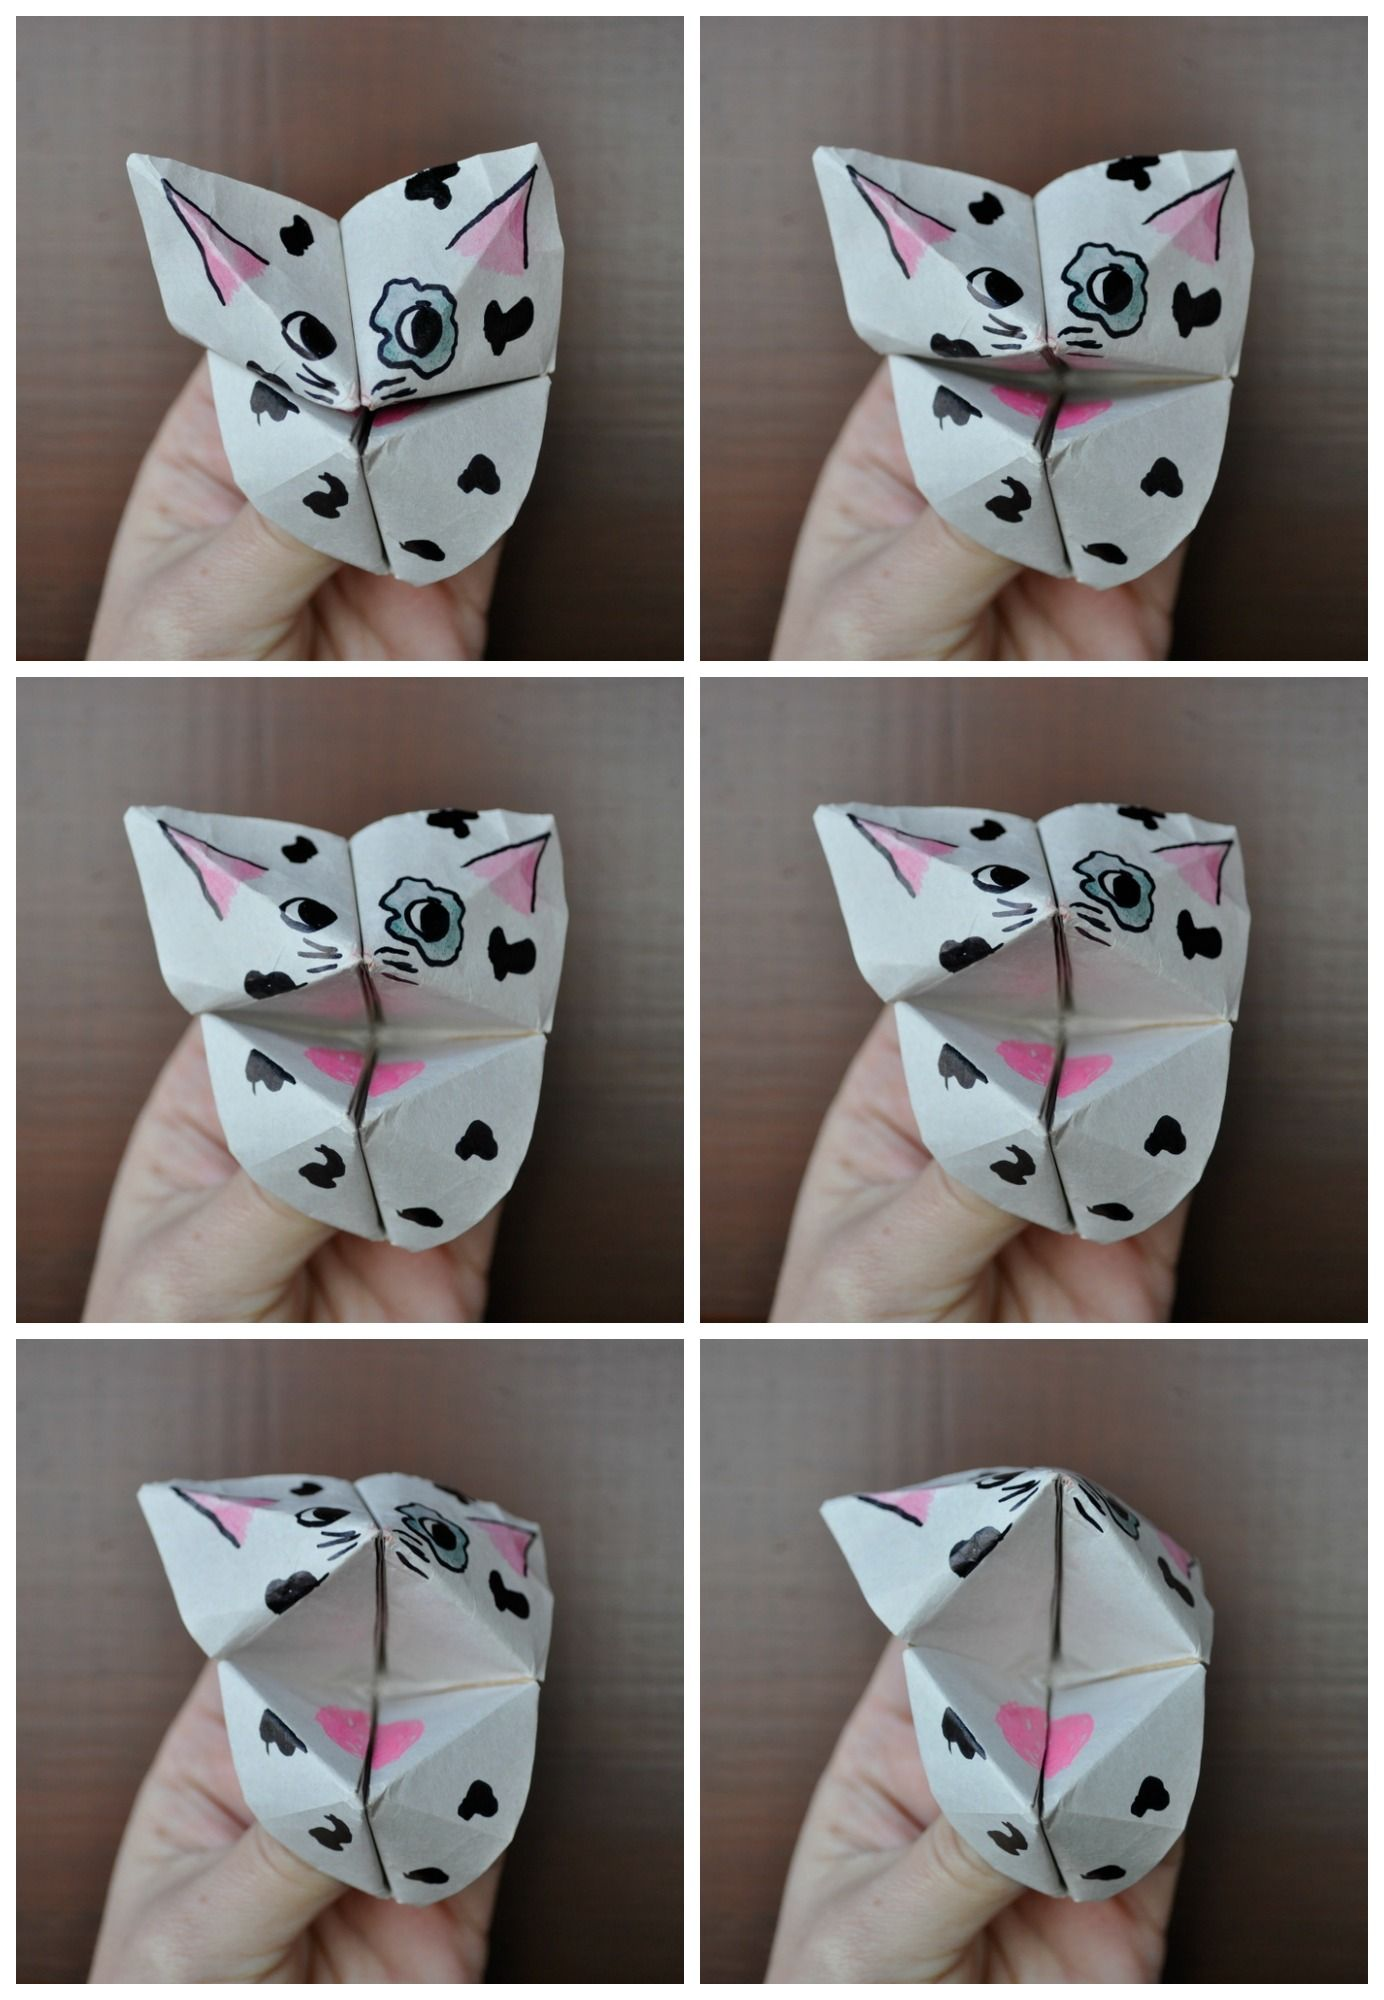 how to make a chatterbox template - how to make chatterbox critters make origami chatterboxes